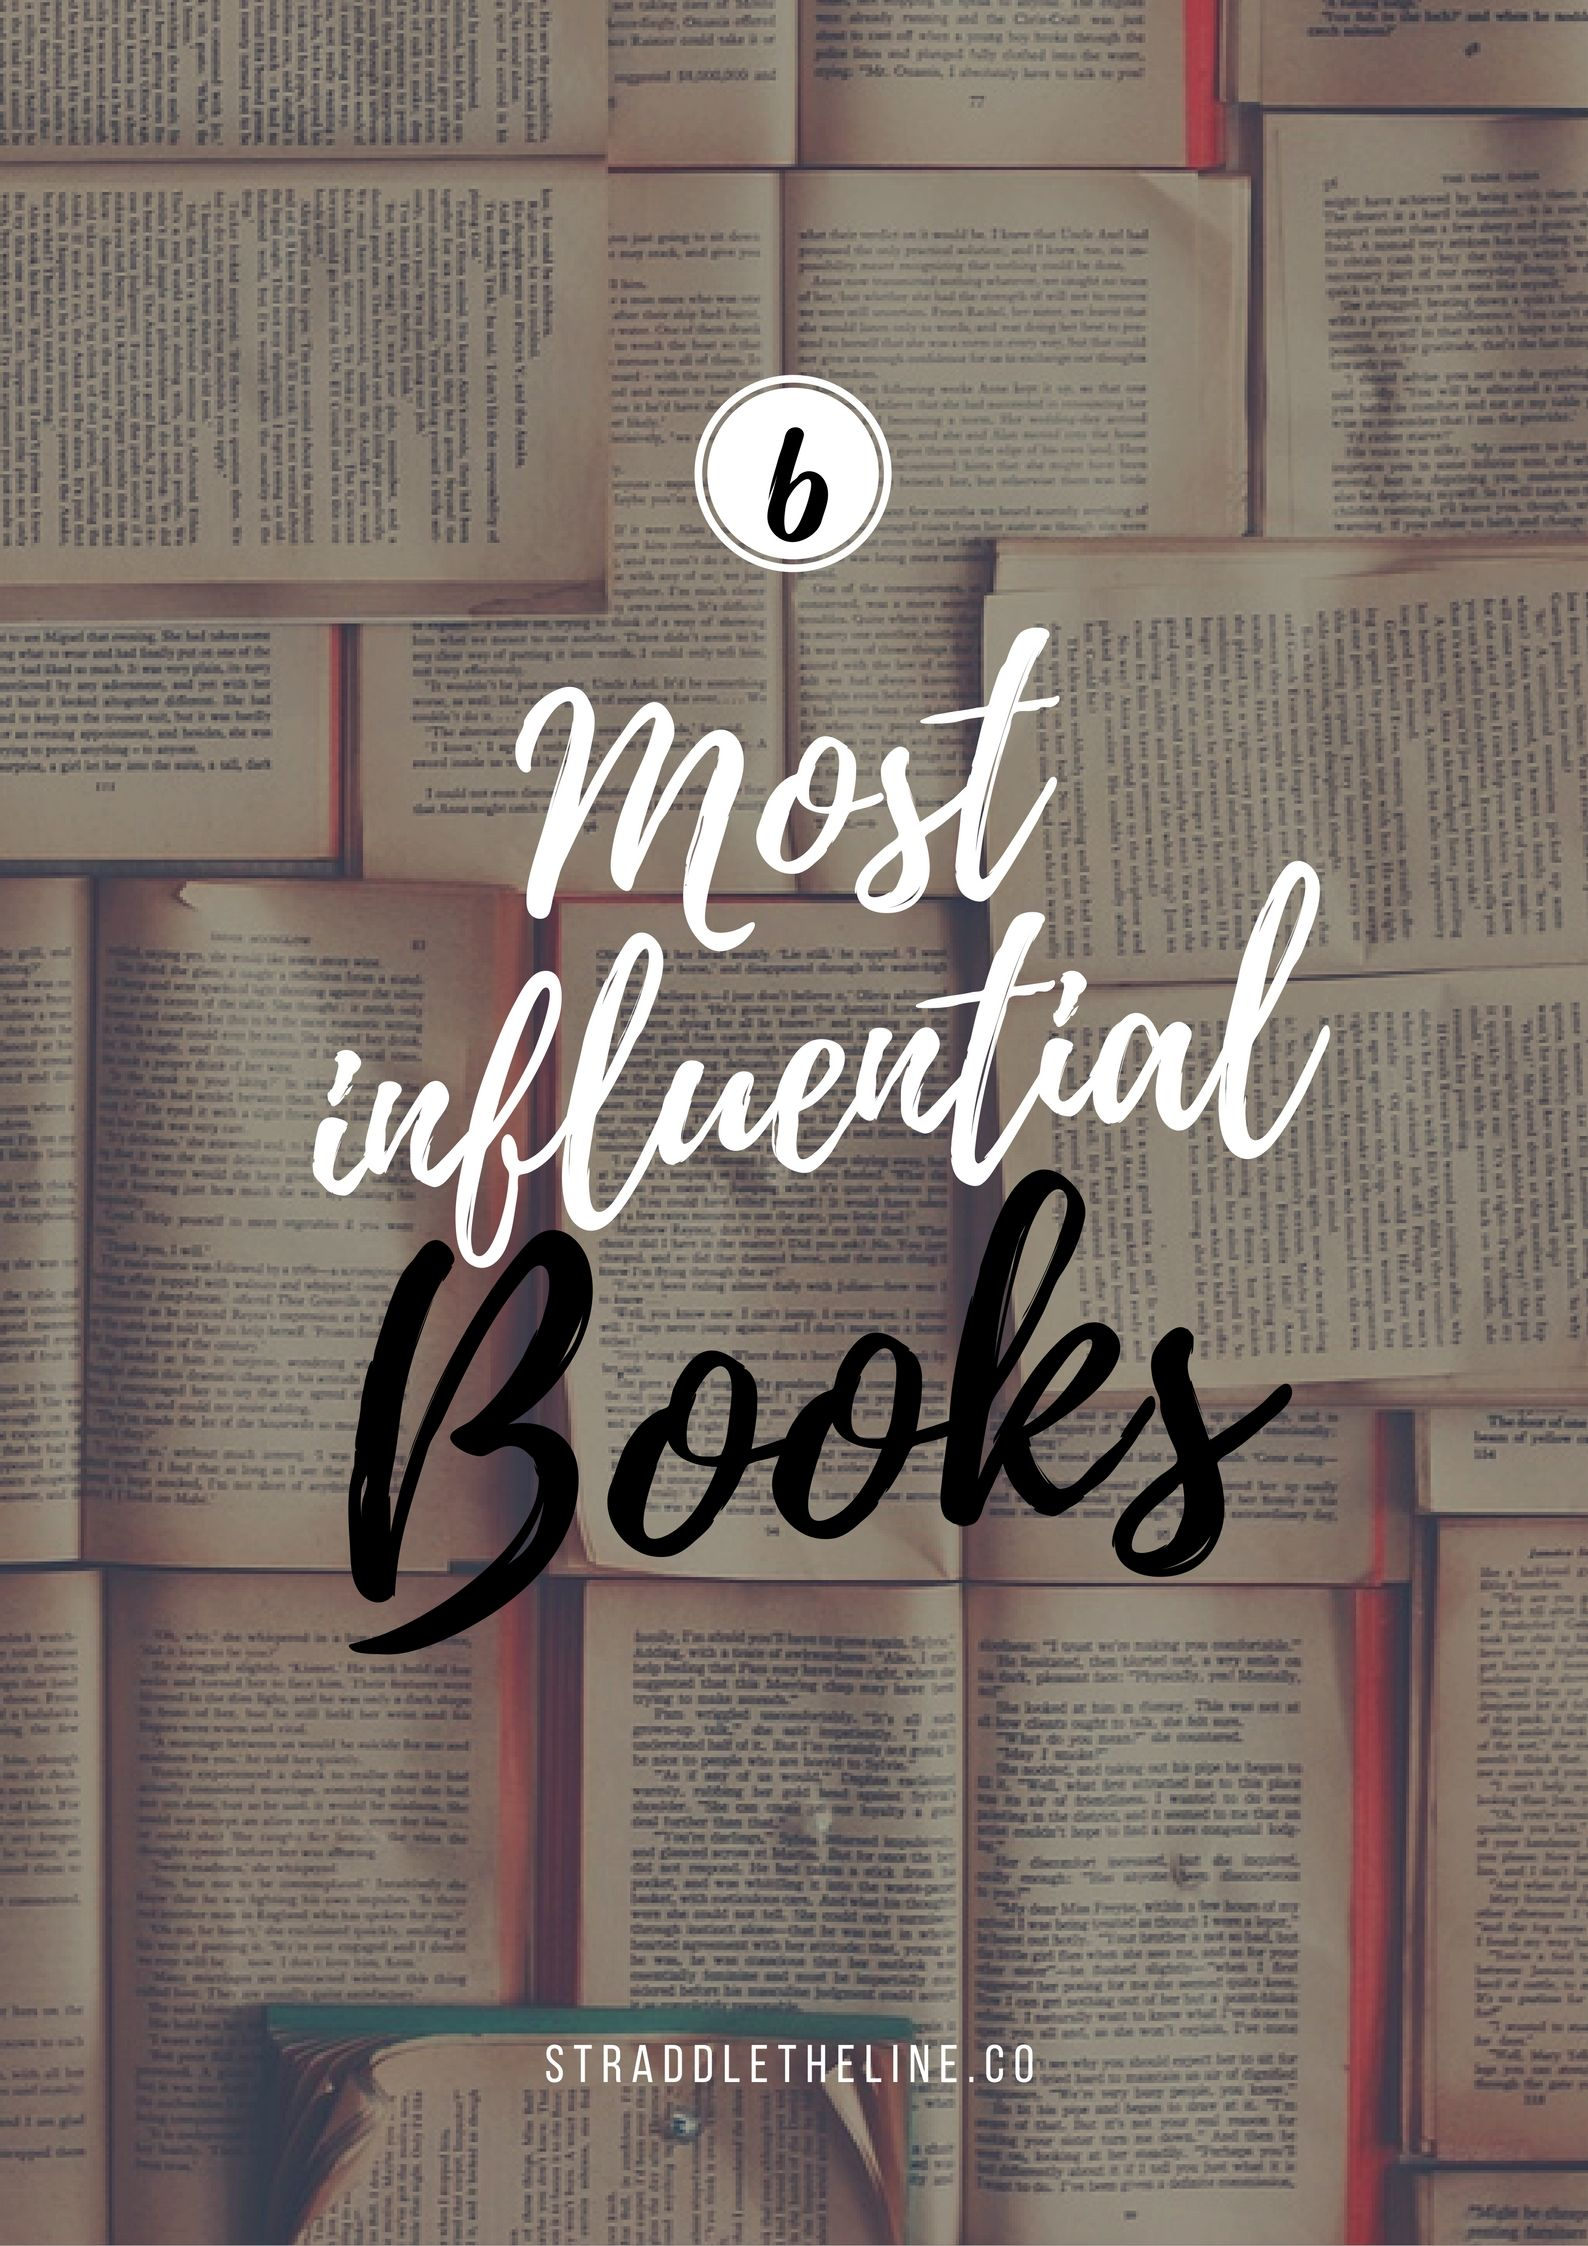 The 6 Most Influential Books For Twenty Somethings is part of Books to read in your teens, Top books to read, Inspirational books to read, Books to read in your 20s, Inspirational books, Books for teens - A list and description of the six most influential books for a millennial or twenty something to read  Great books for a quarter life crisis!